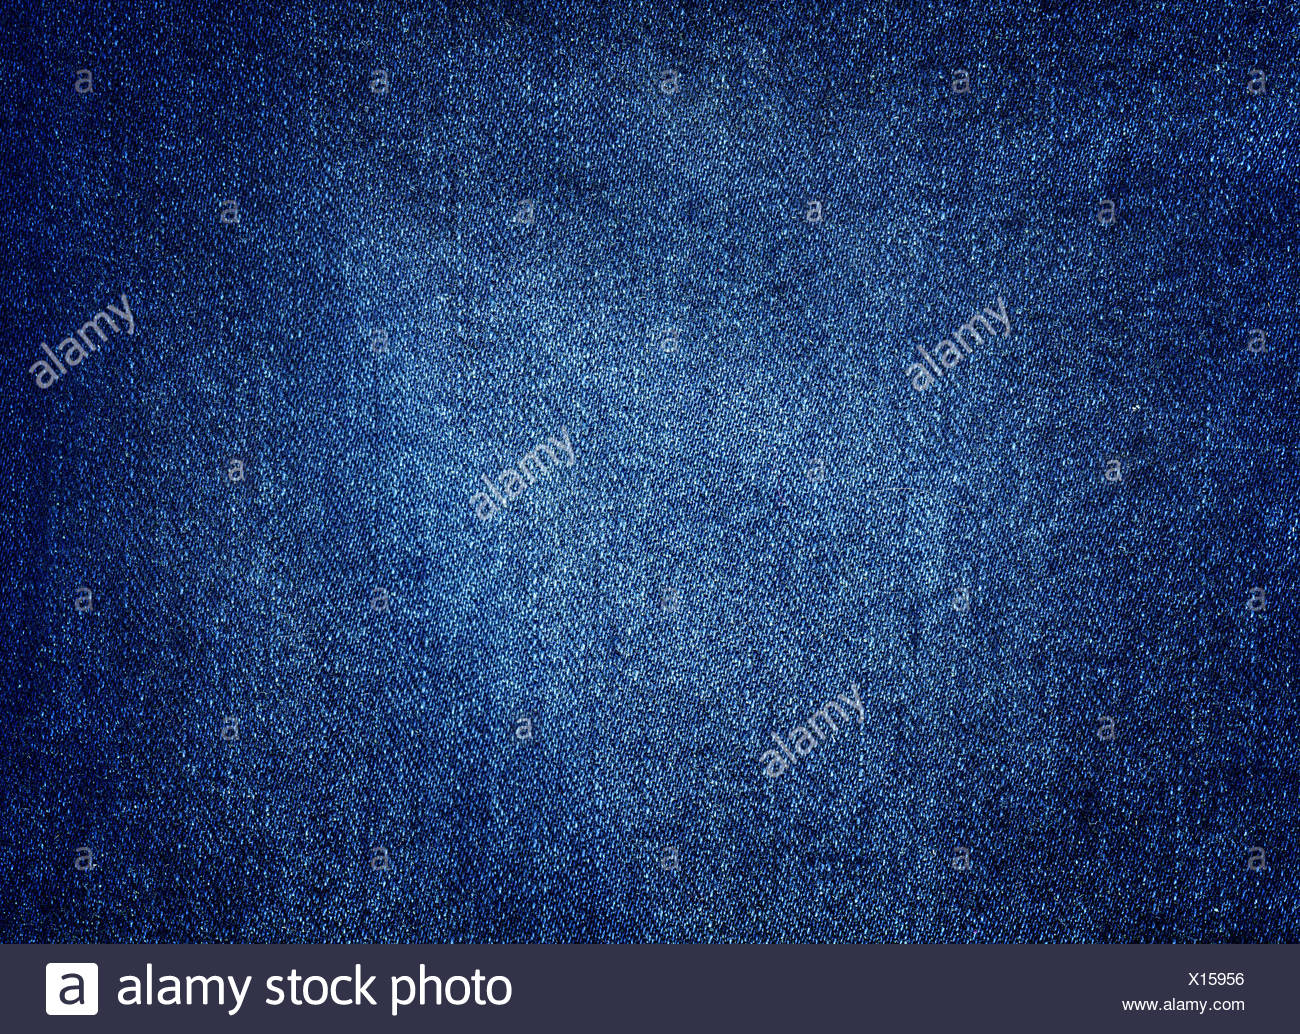 Denim Jeans background Photo Stock